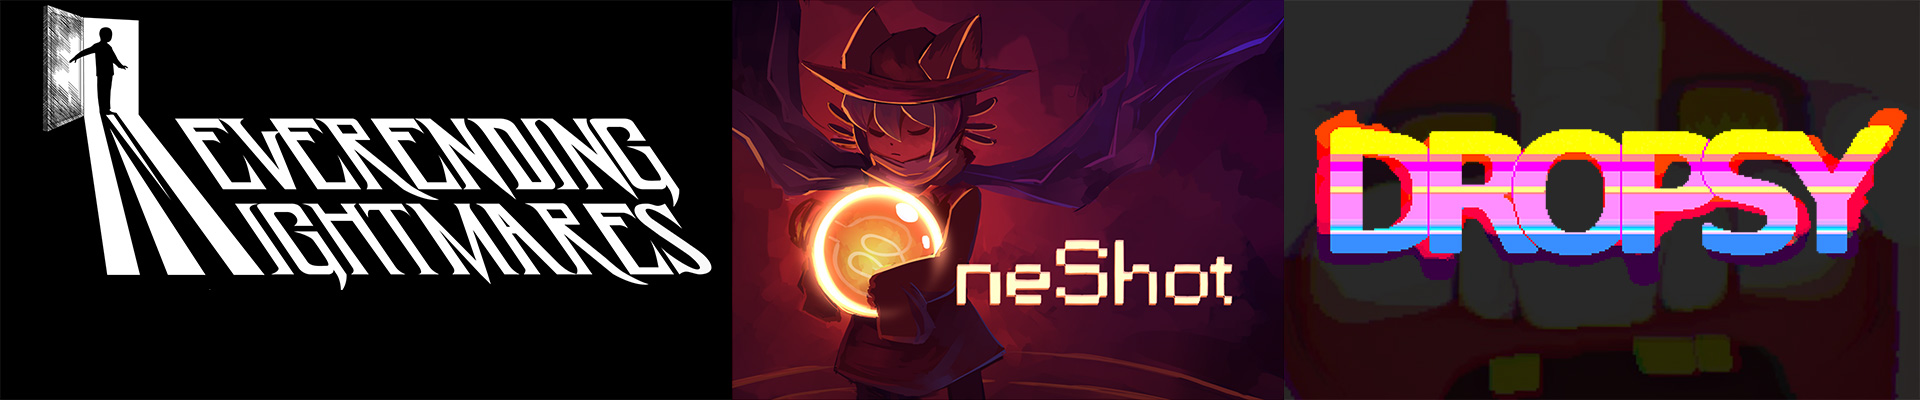 Мысли про: Neverending Nightmares, Dropsy и OneShot